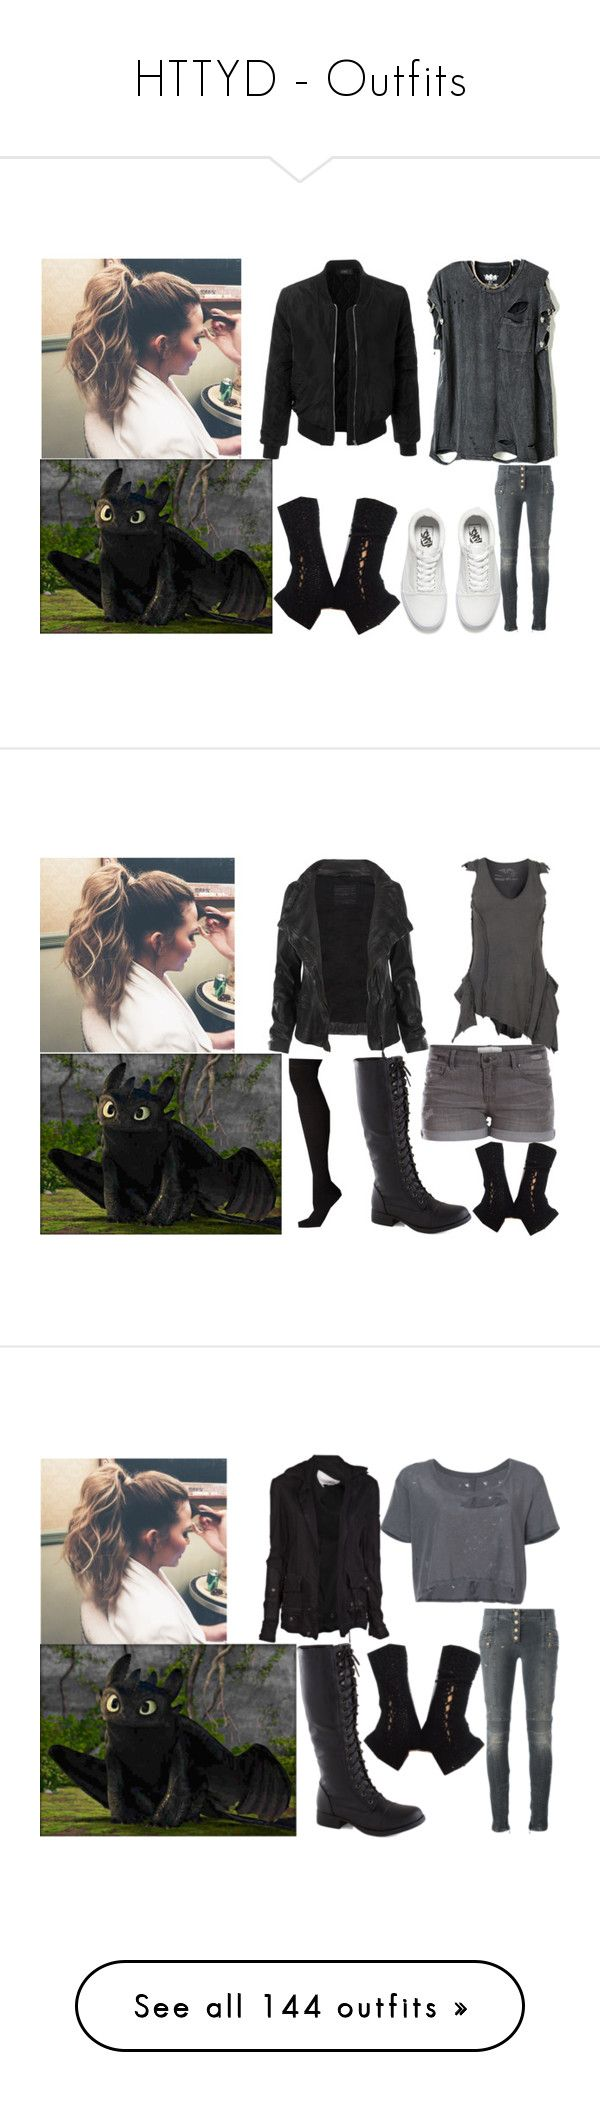 """HTTYD - Outfits"" by annabellewren ❤ liked on Polyvore featuring HowToTrainYourDragon, httyd, Vans, Balmain, LE3NO, modern, AllSaints, Pieces, Socksmith and Greg Lauren"